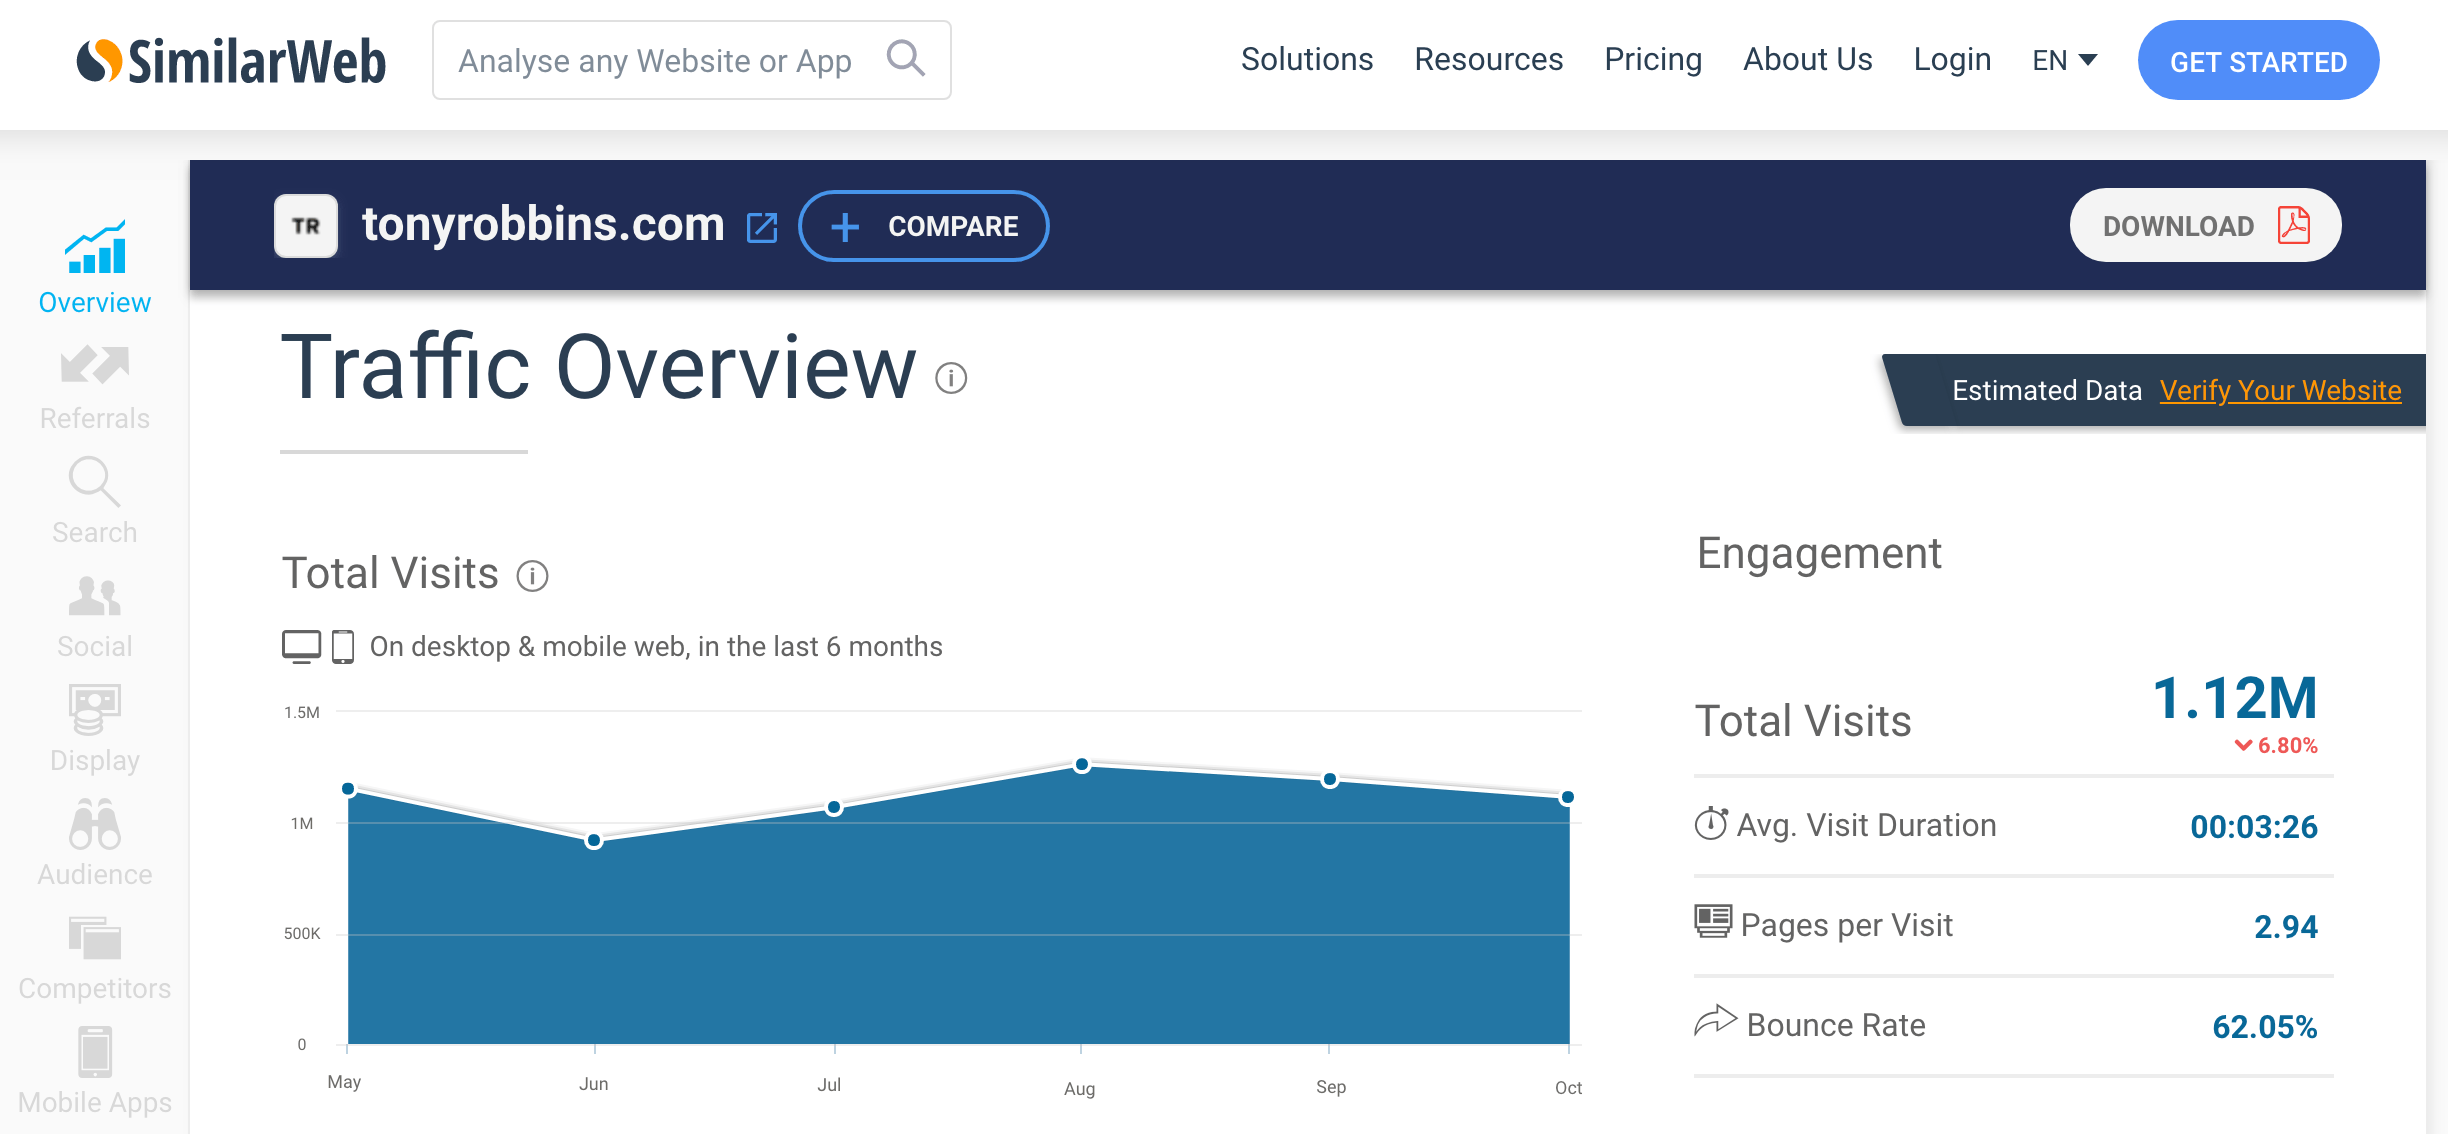 similarweb traffic image